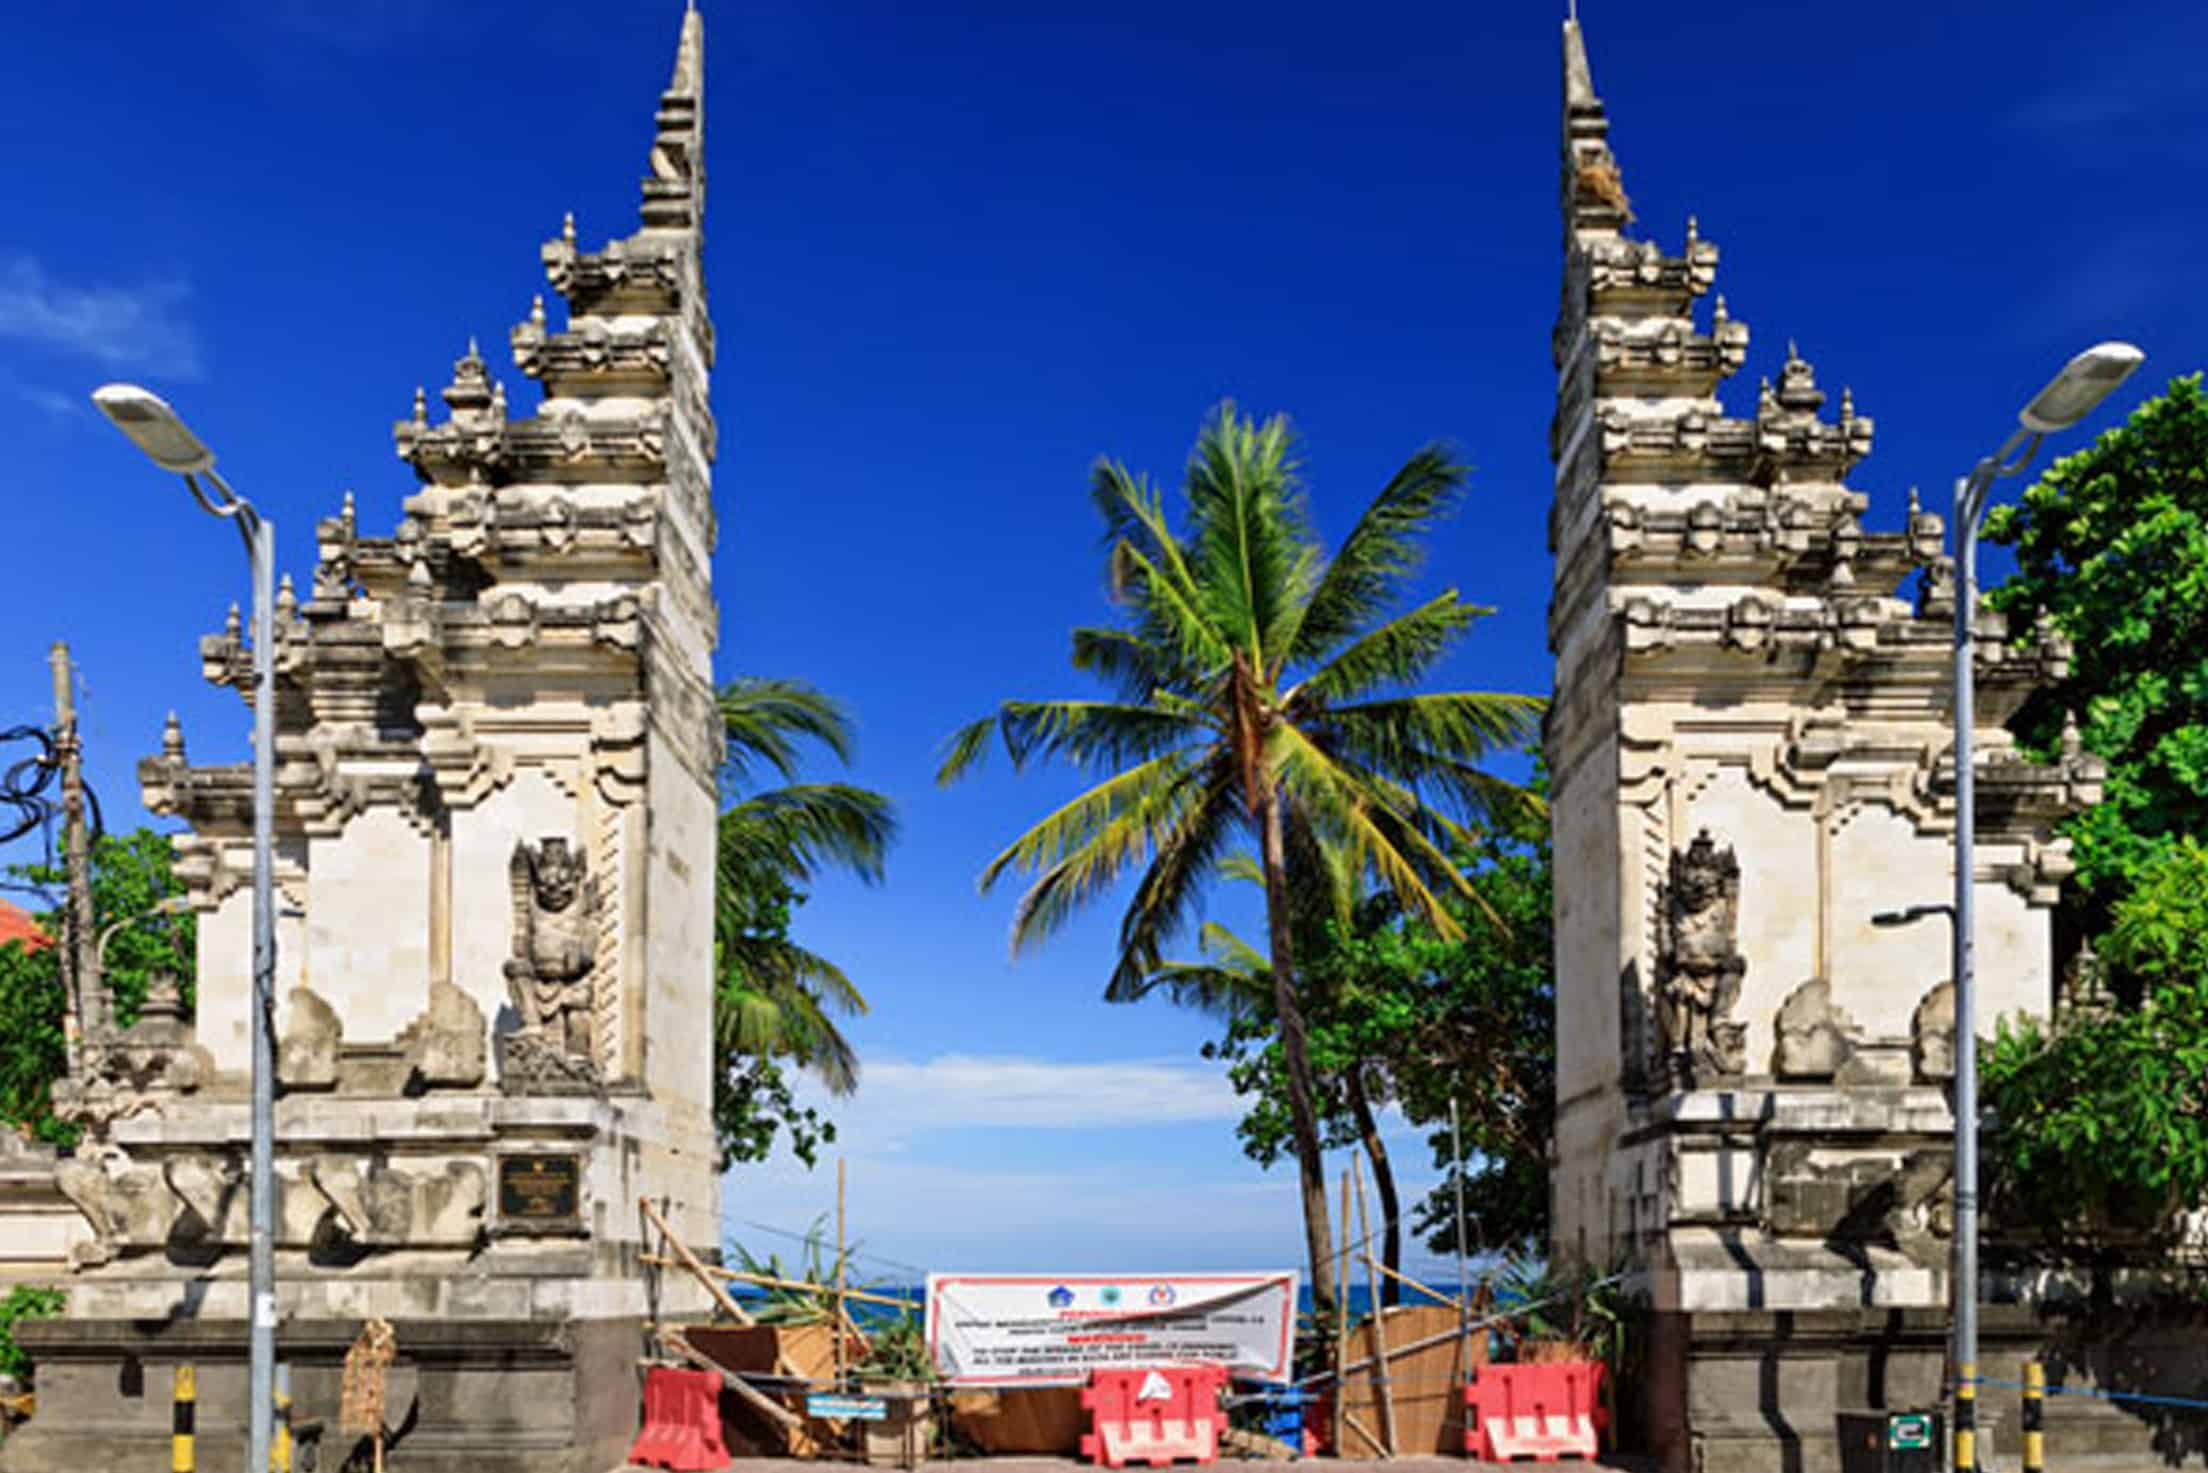 BALI, PREPARED TO BECOME A POST-EPIDEMIC NEW NORMAL DESTINATION